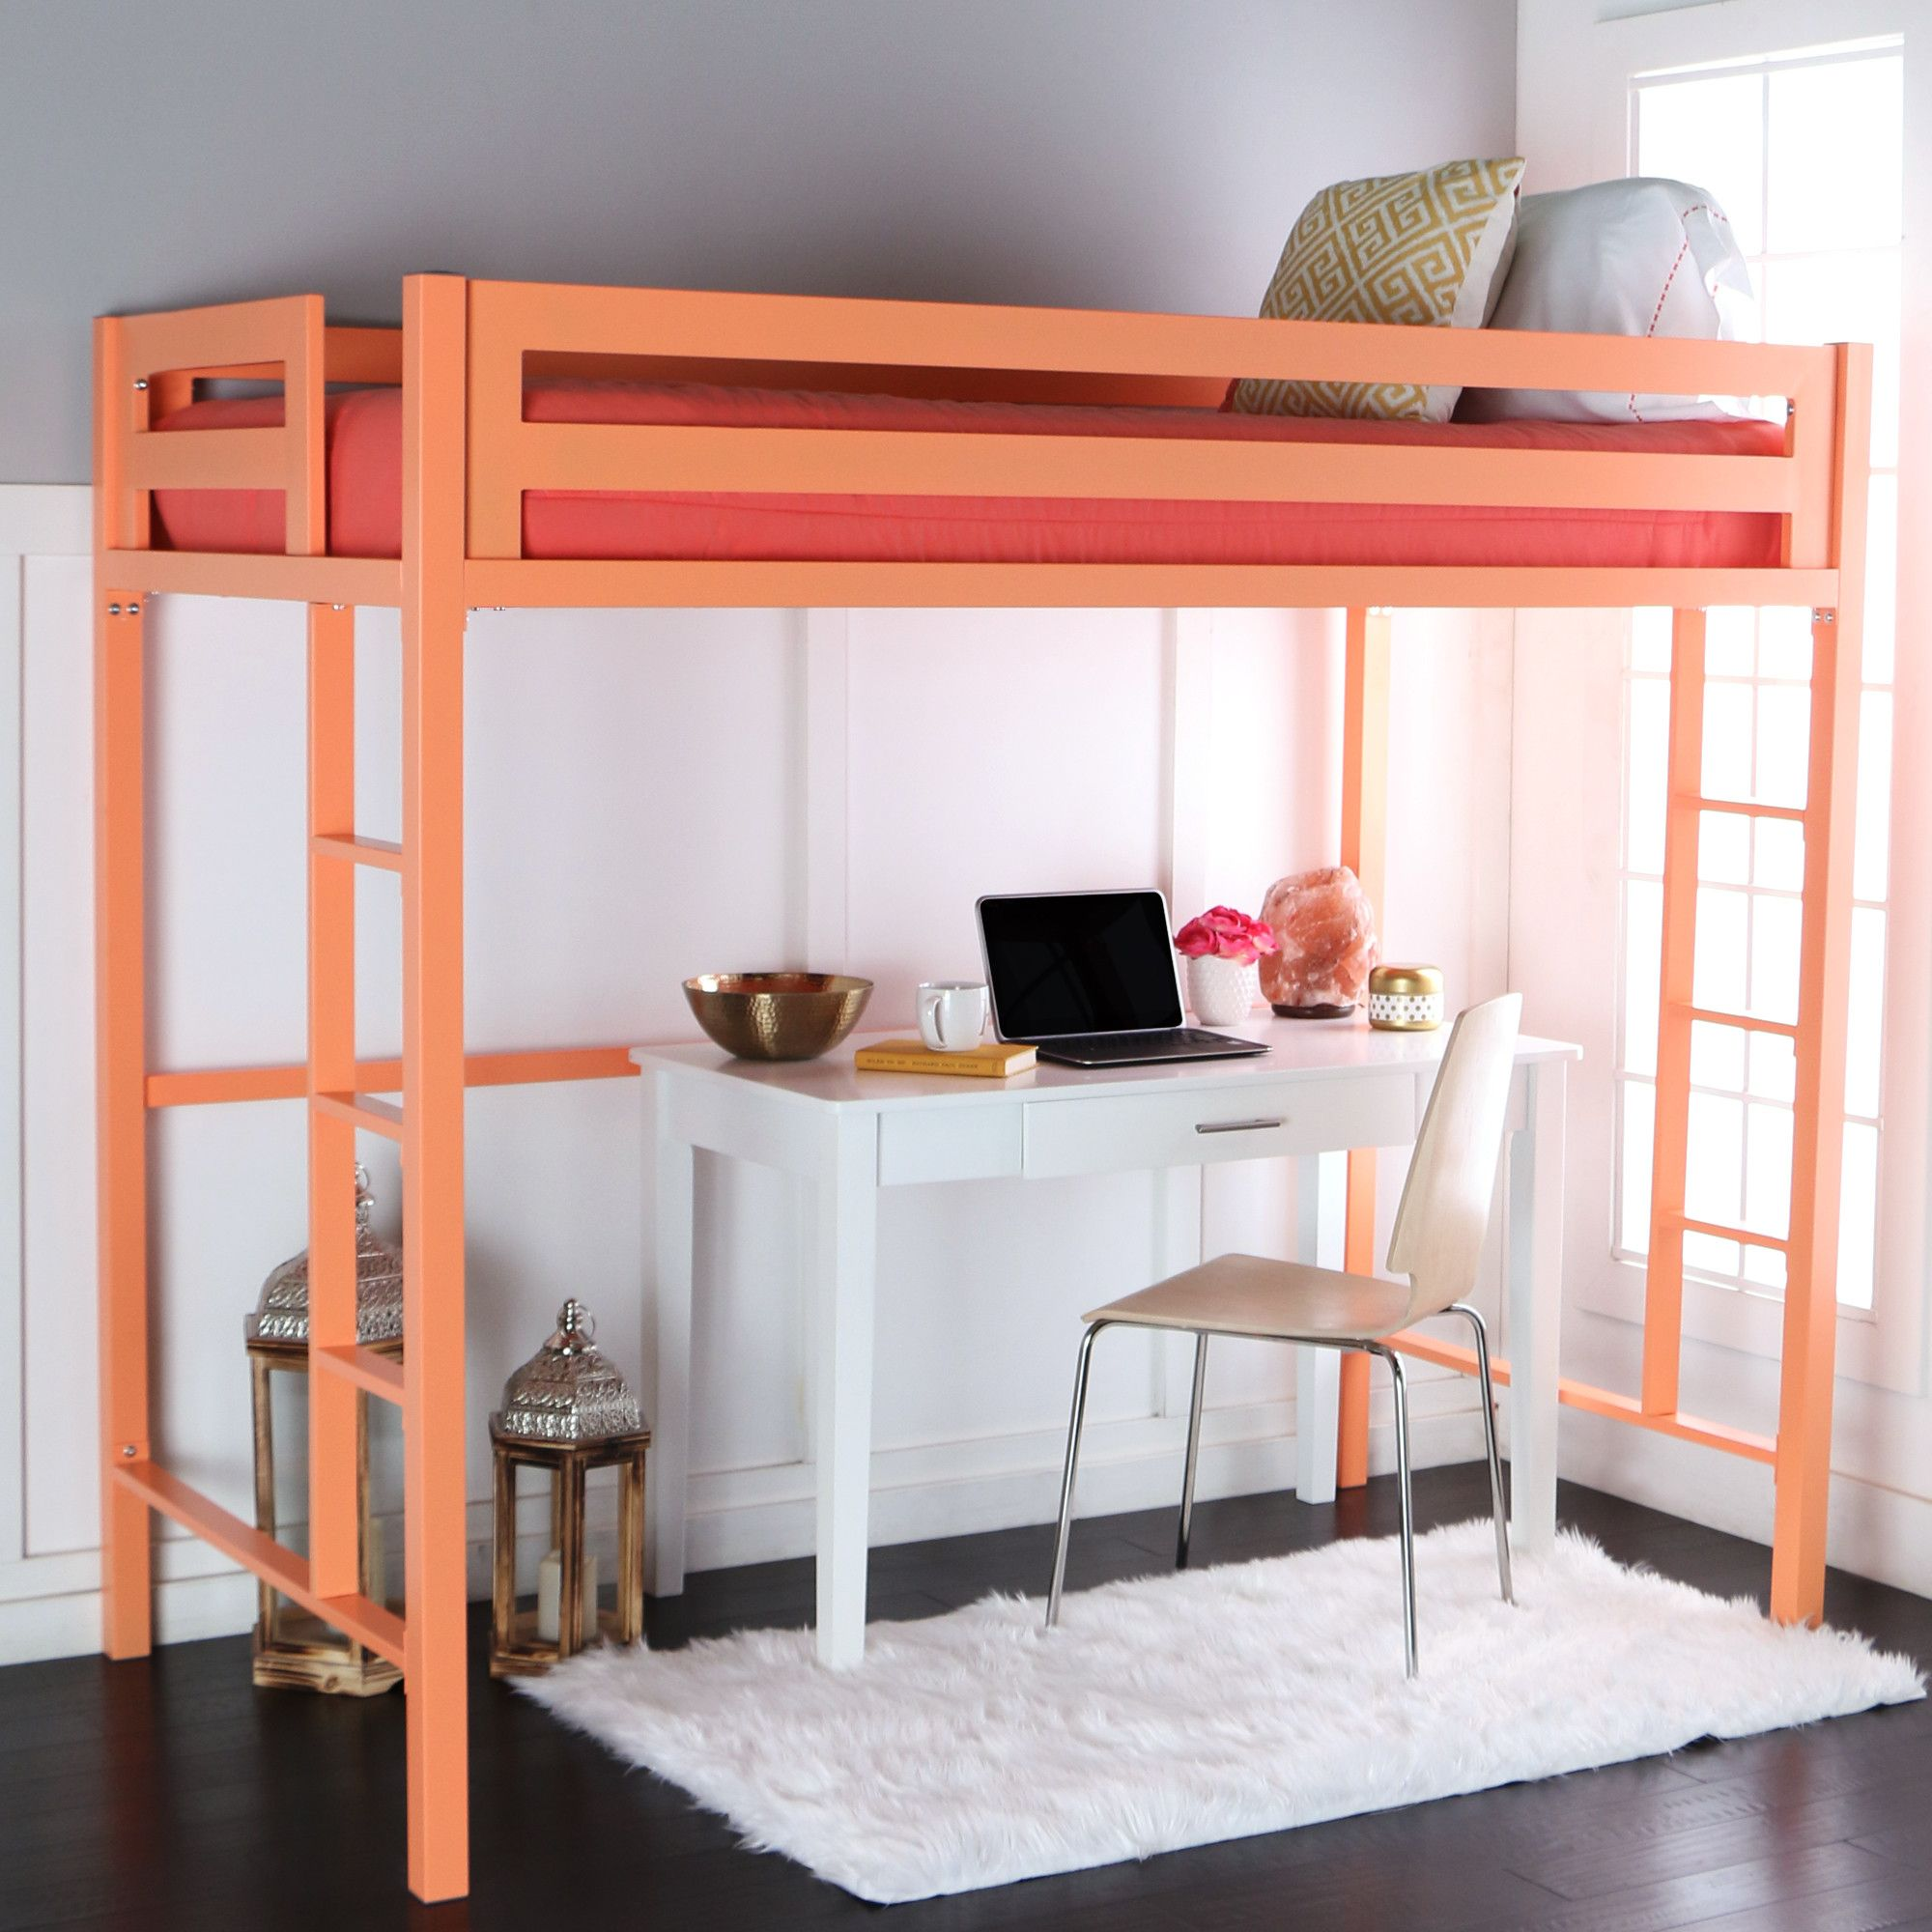 Wooden loft bed with desk  Nikolai Twin Slat Bed  Products  Pinterest  Products